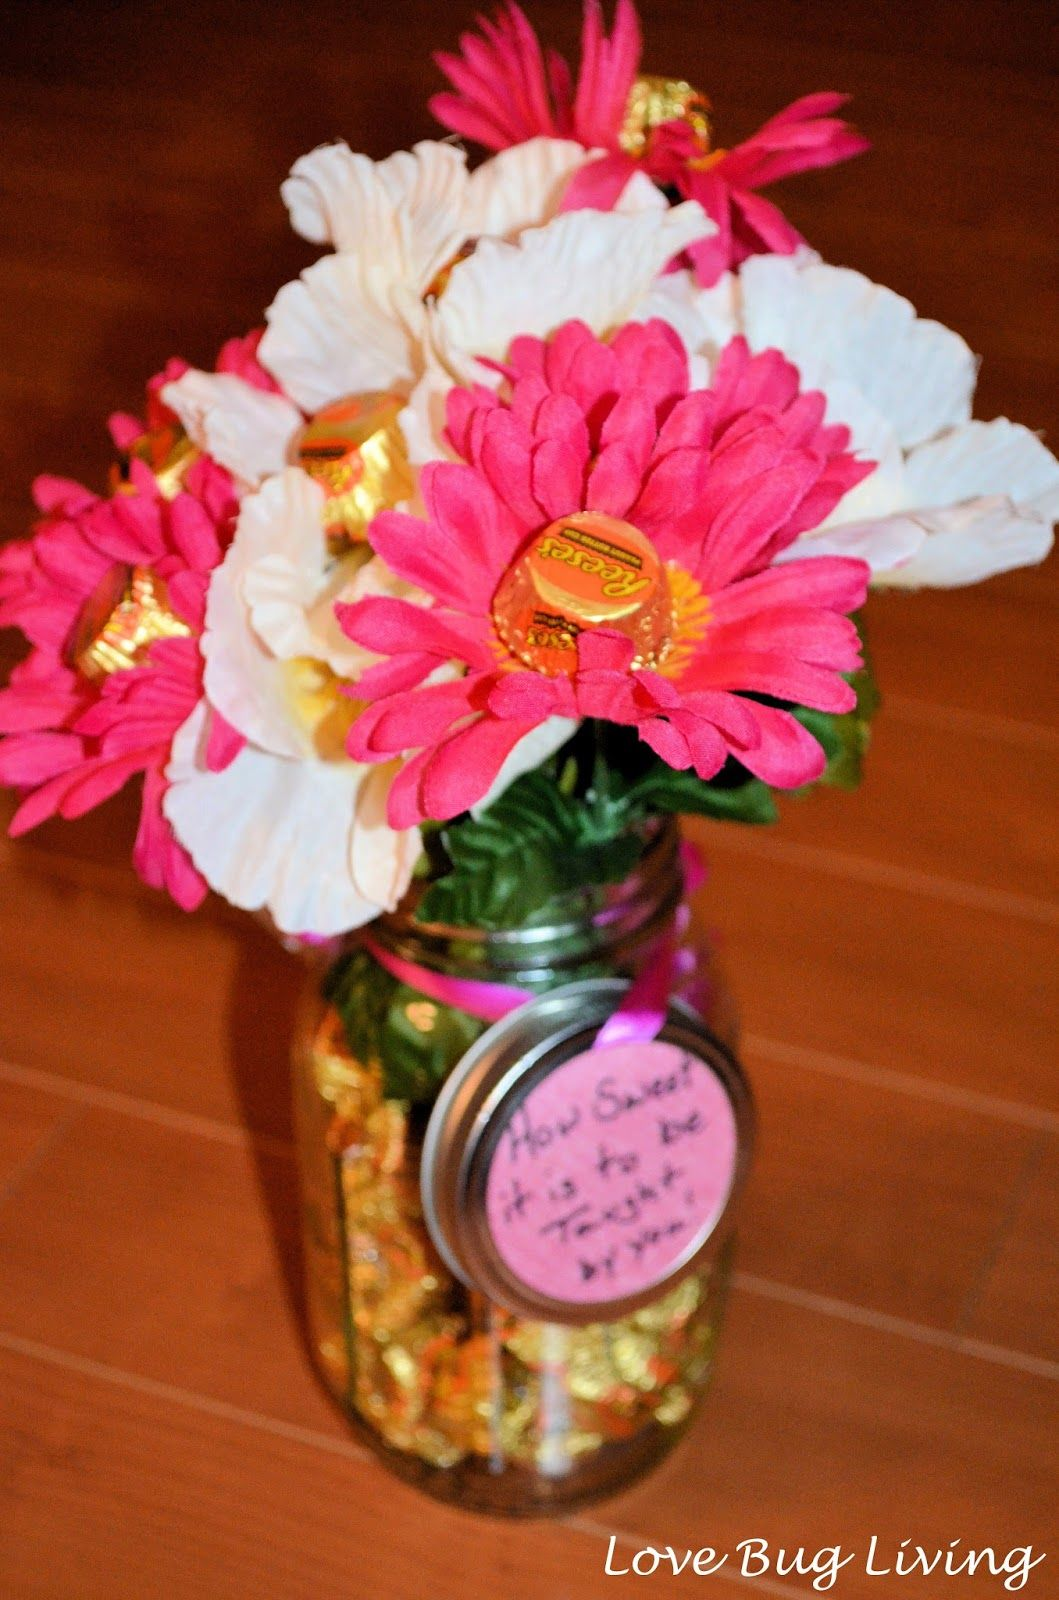 Love bug living candy flower bouquet mason jar gift for teacher love bug living candy flower bouquet mason jar gift for teacher appreciation day or mothers day izmirmasajfo